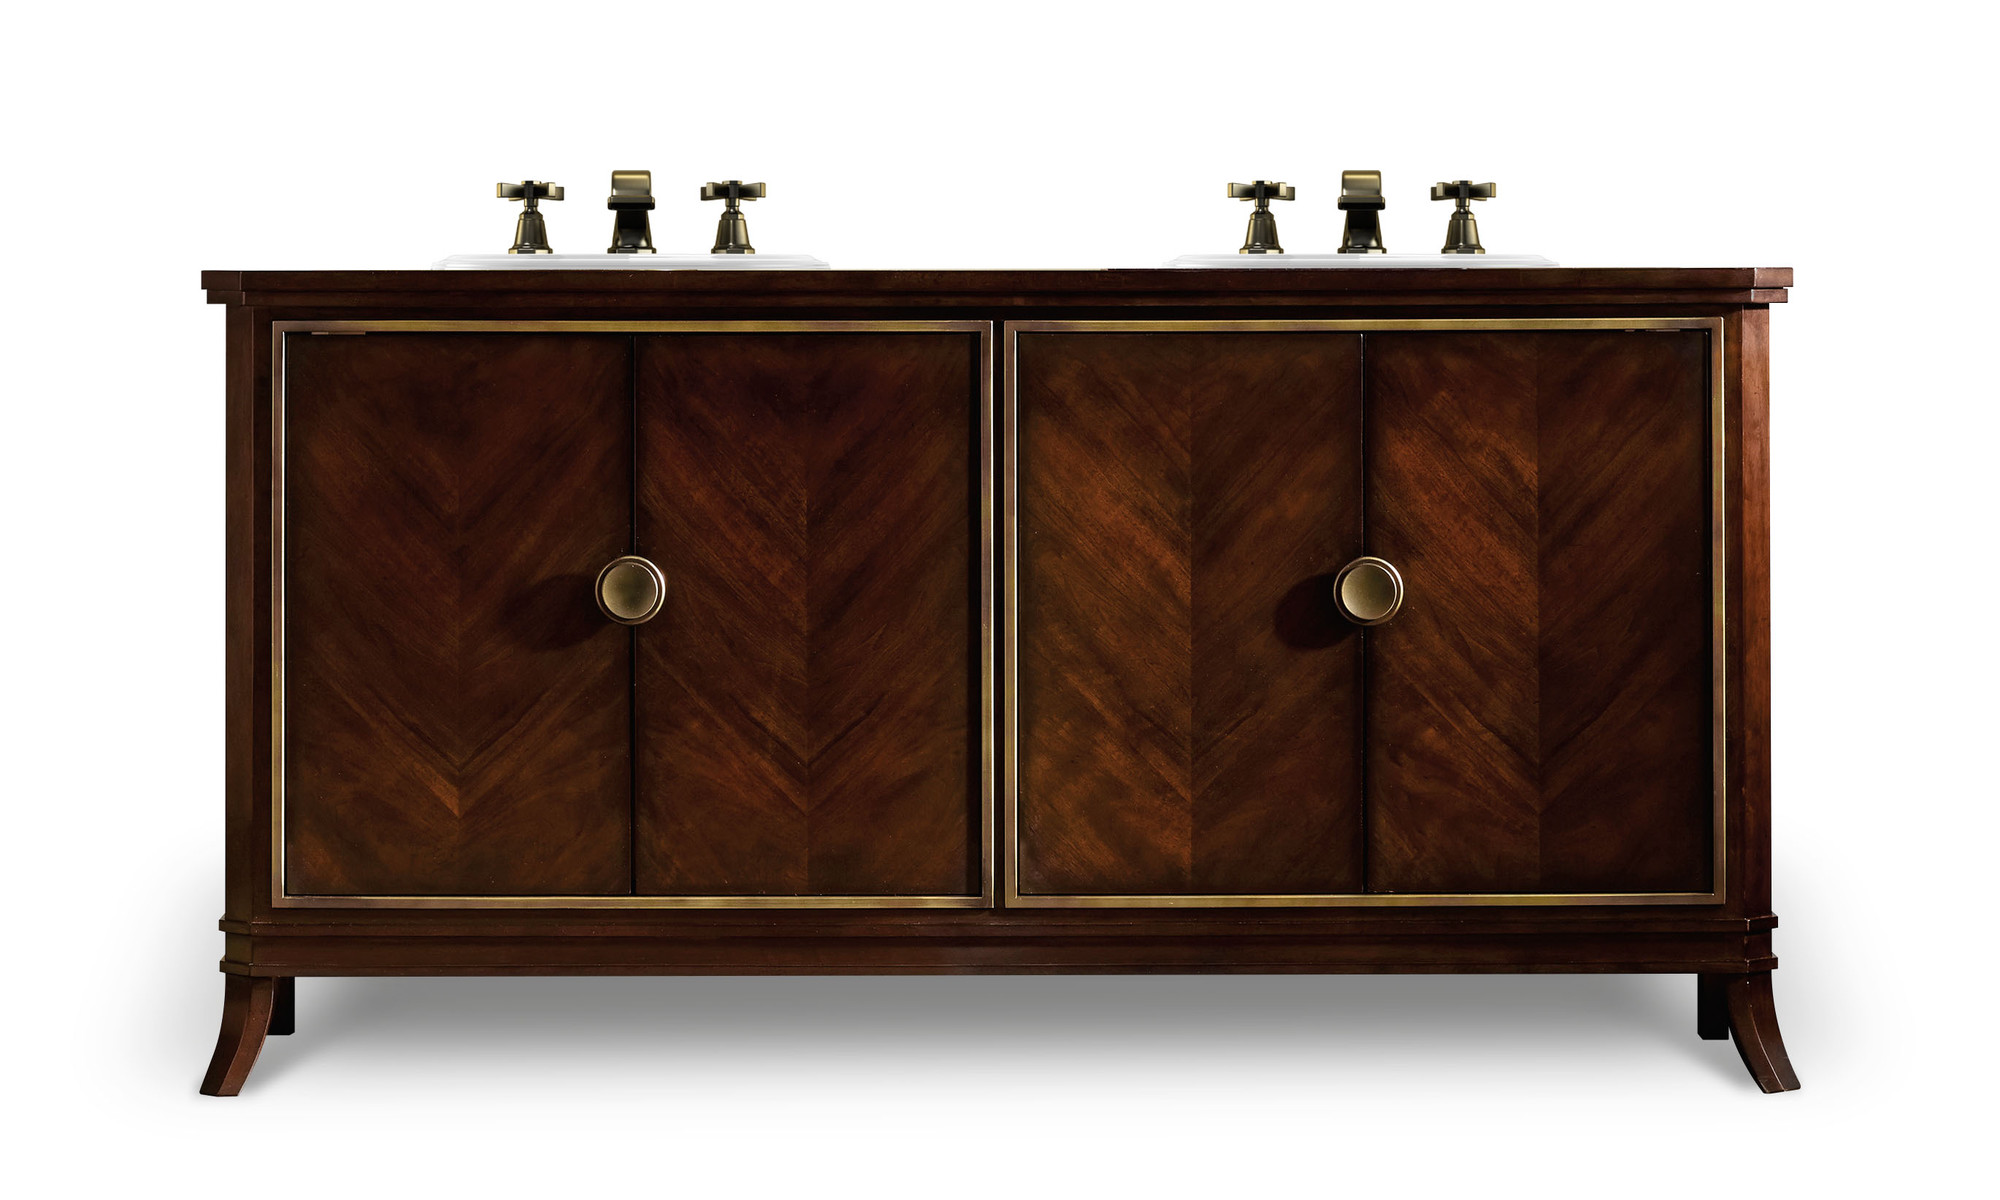 Paxton 68 inch Hall Chest Bathroom Vanity by Cole & Co. Designer Series